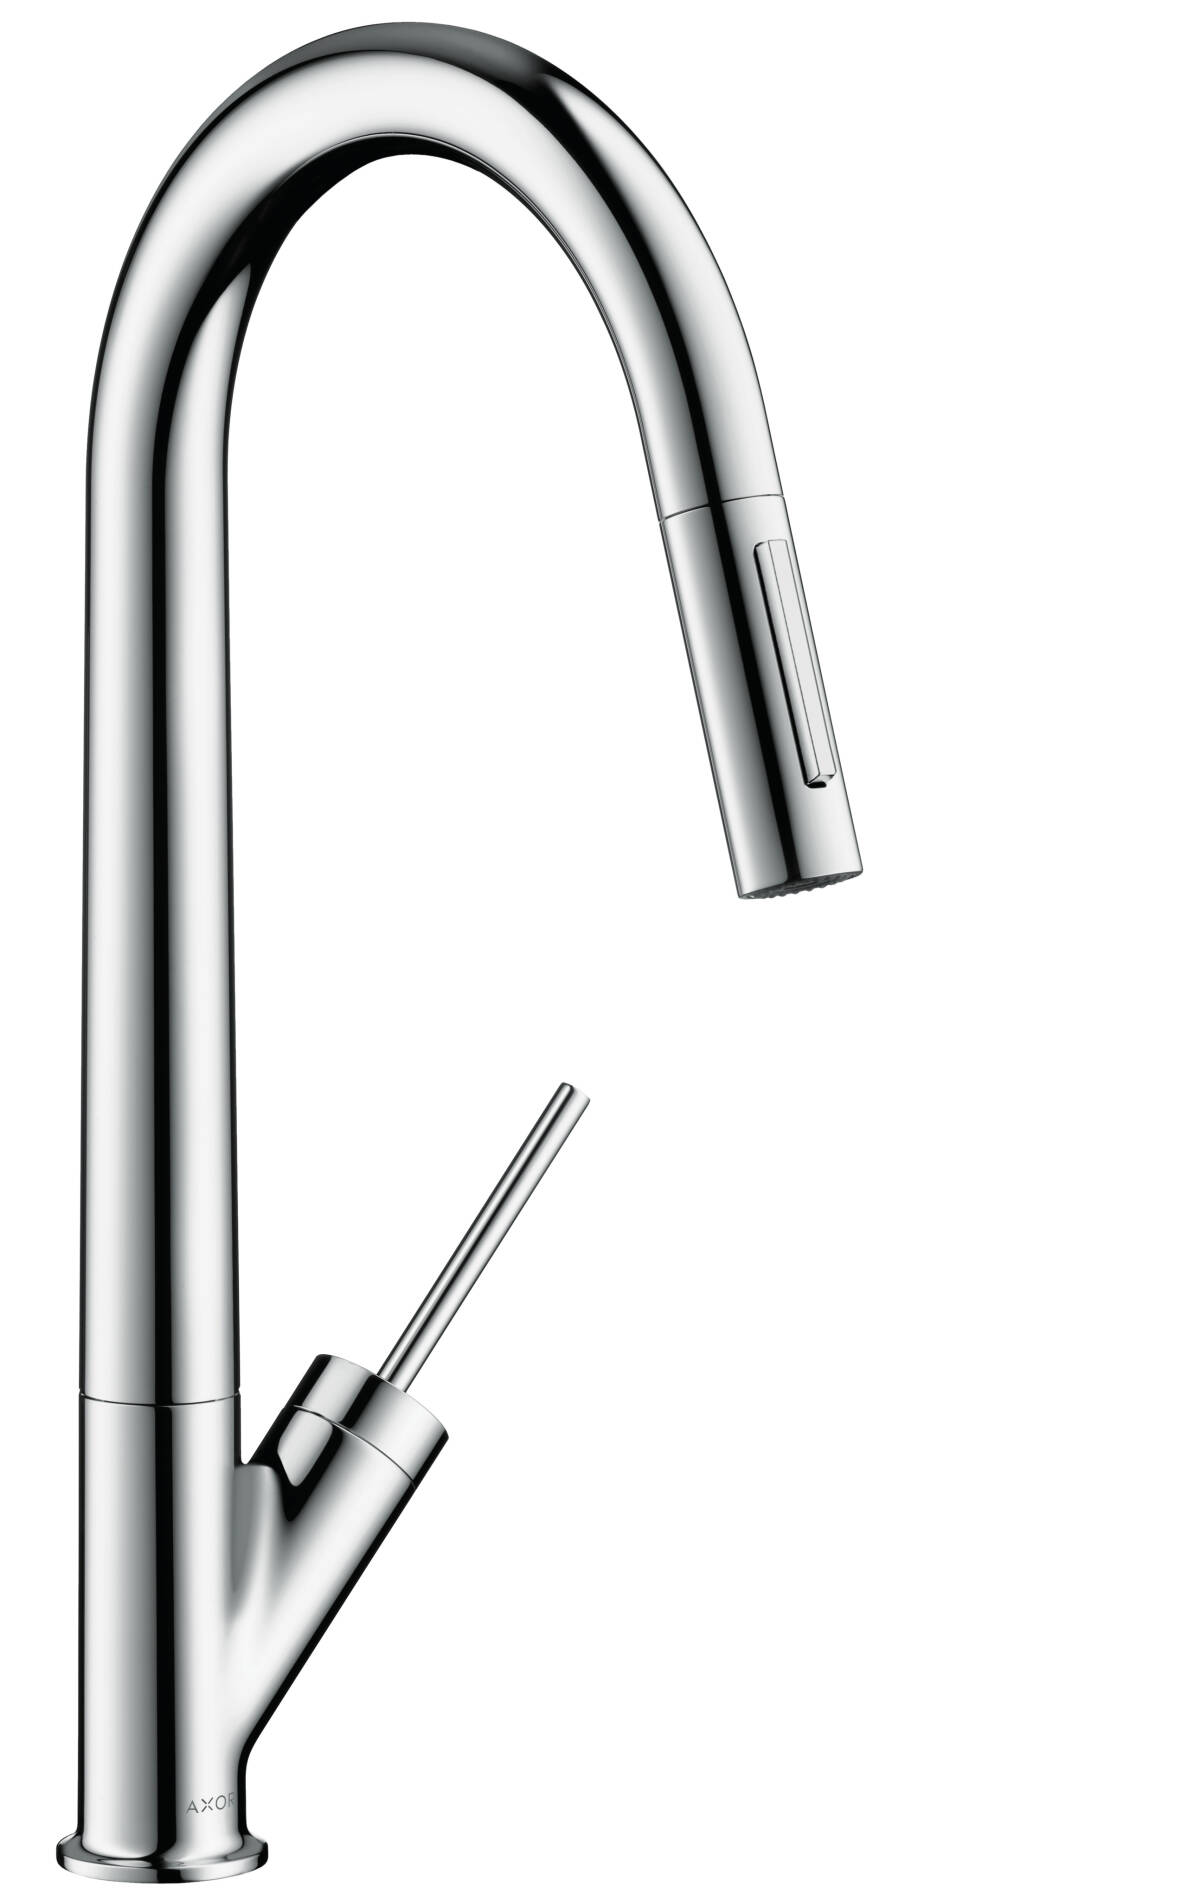 Single lever kitchen mixer 270 with pull-out spray, Chrome, 10821000